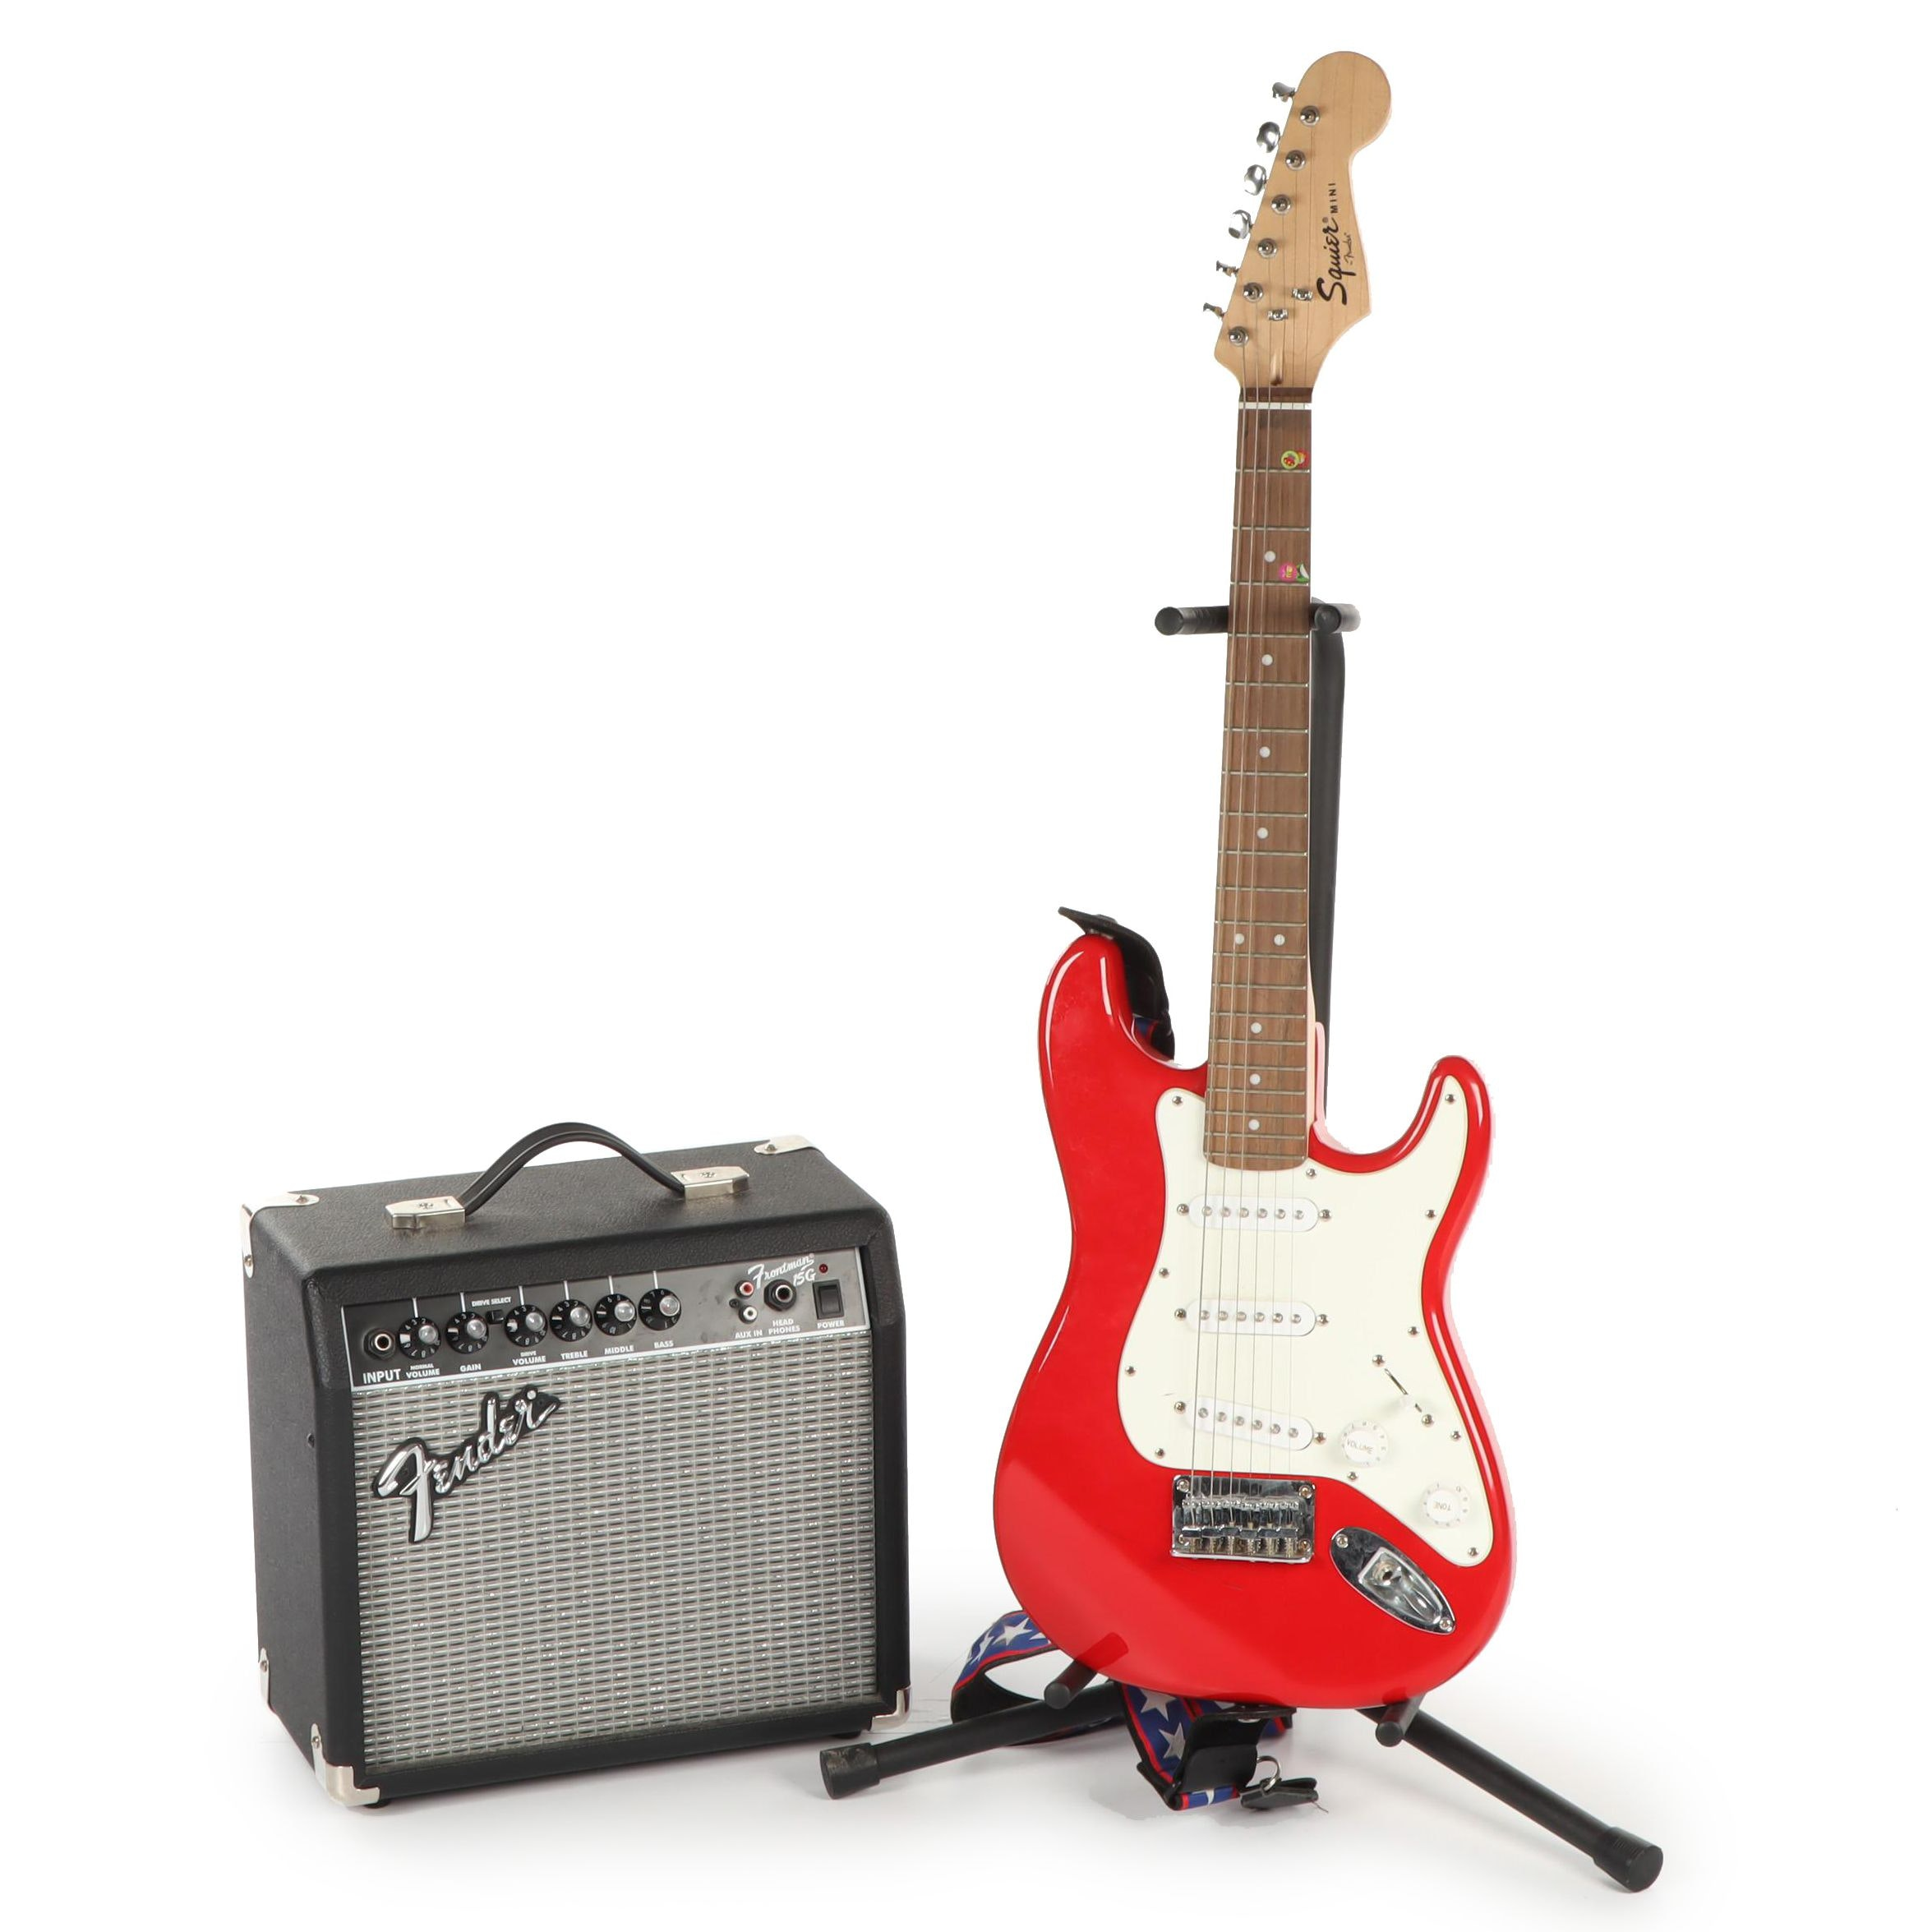 Fender Squier Mini Electric Guitar Set with Frontman Amplifier and Stand